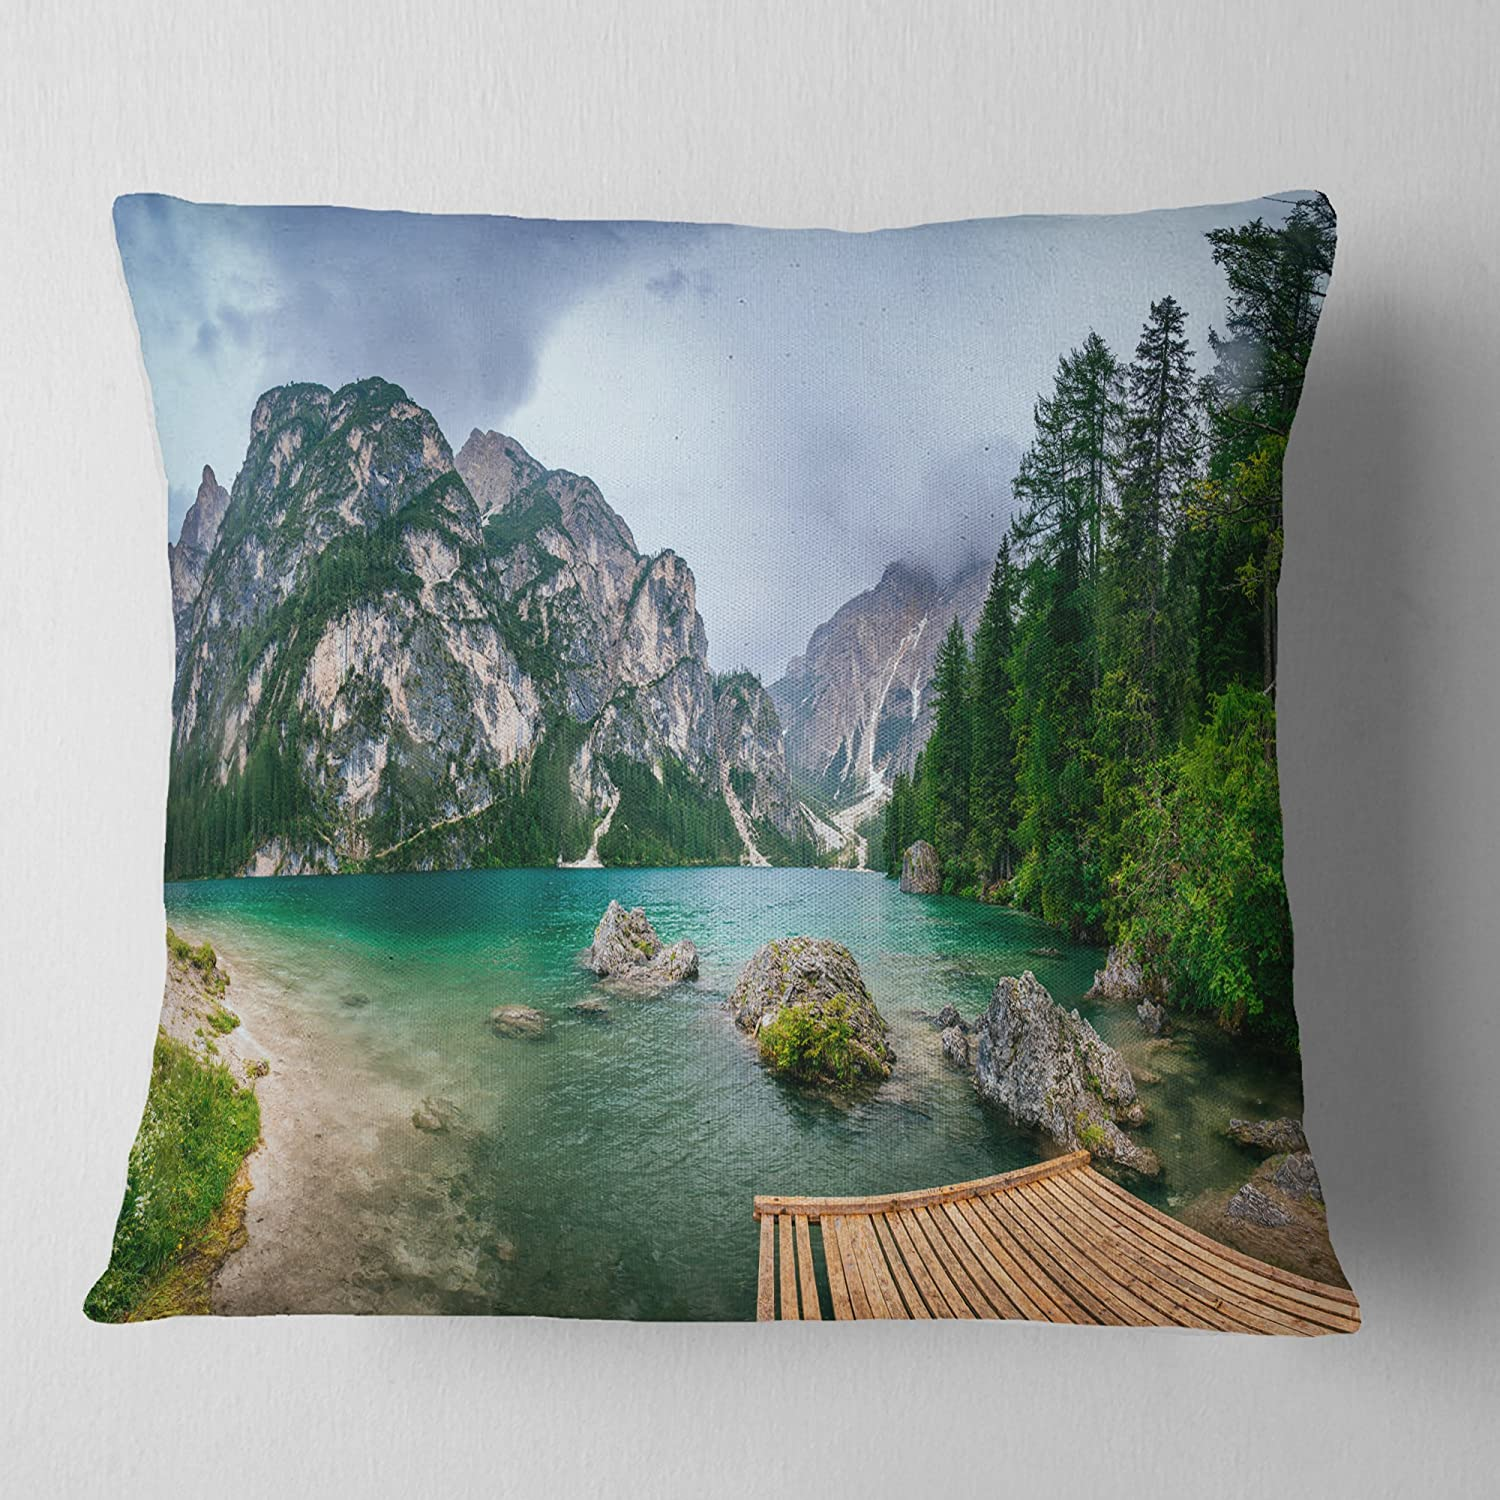 in Sofa Throw Pillow 26 in Designart CU8164-26-26 Lake Between Mountains Landscape Photography Cushion Cover for Living Room x 26 in